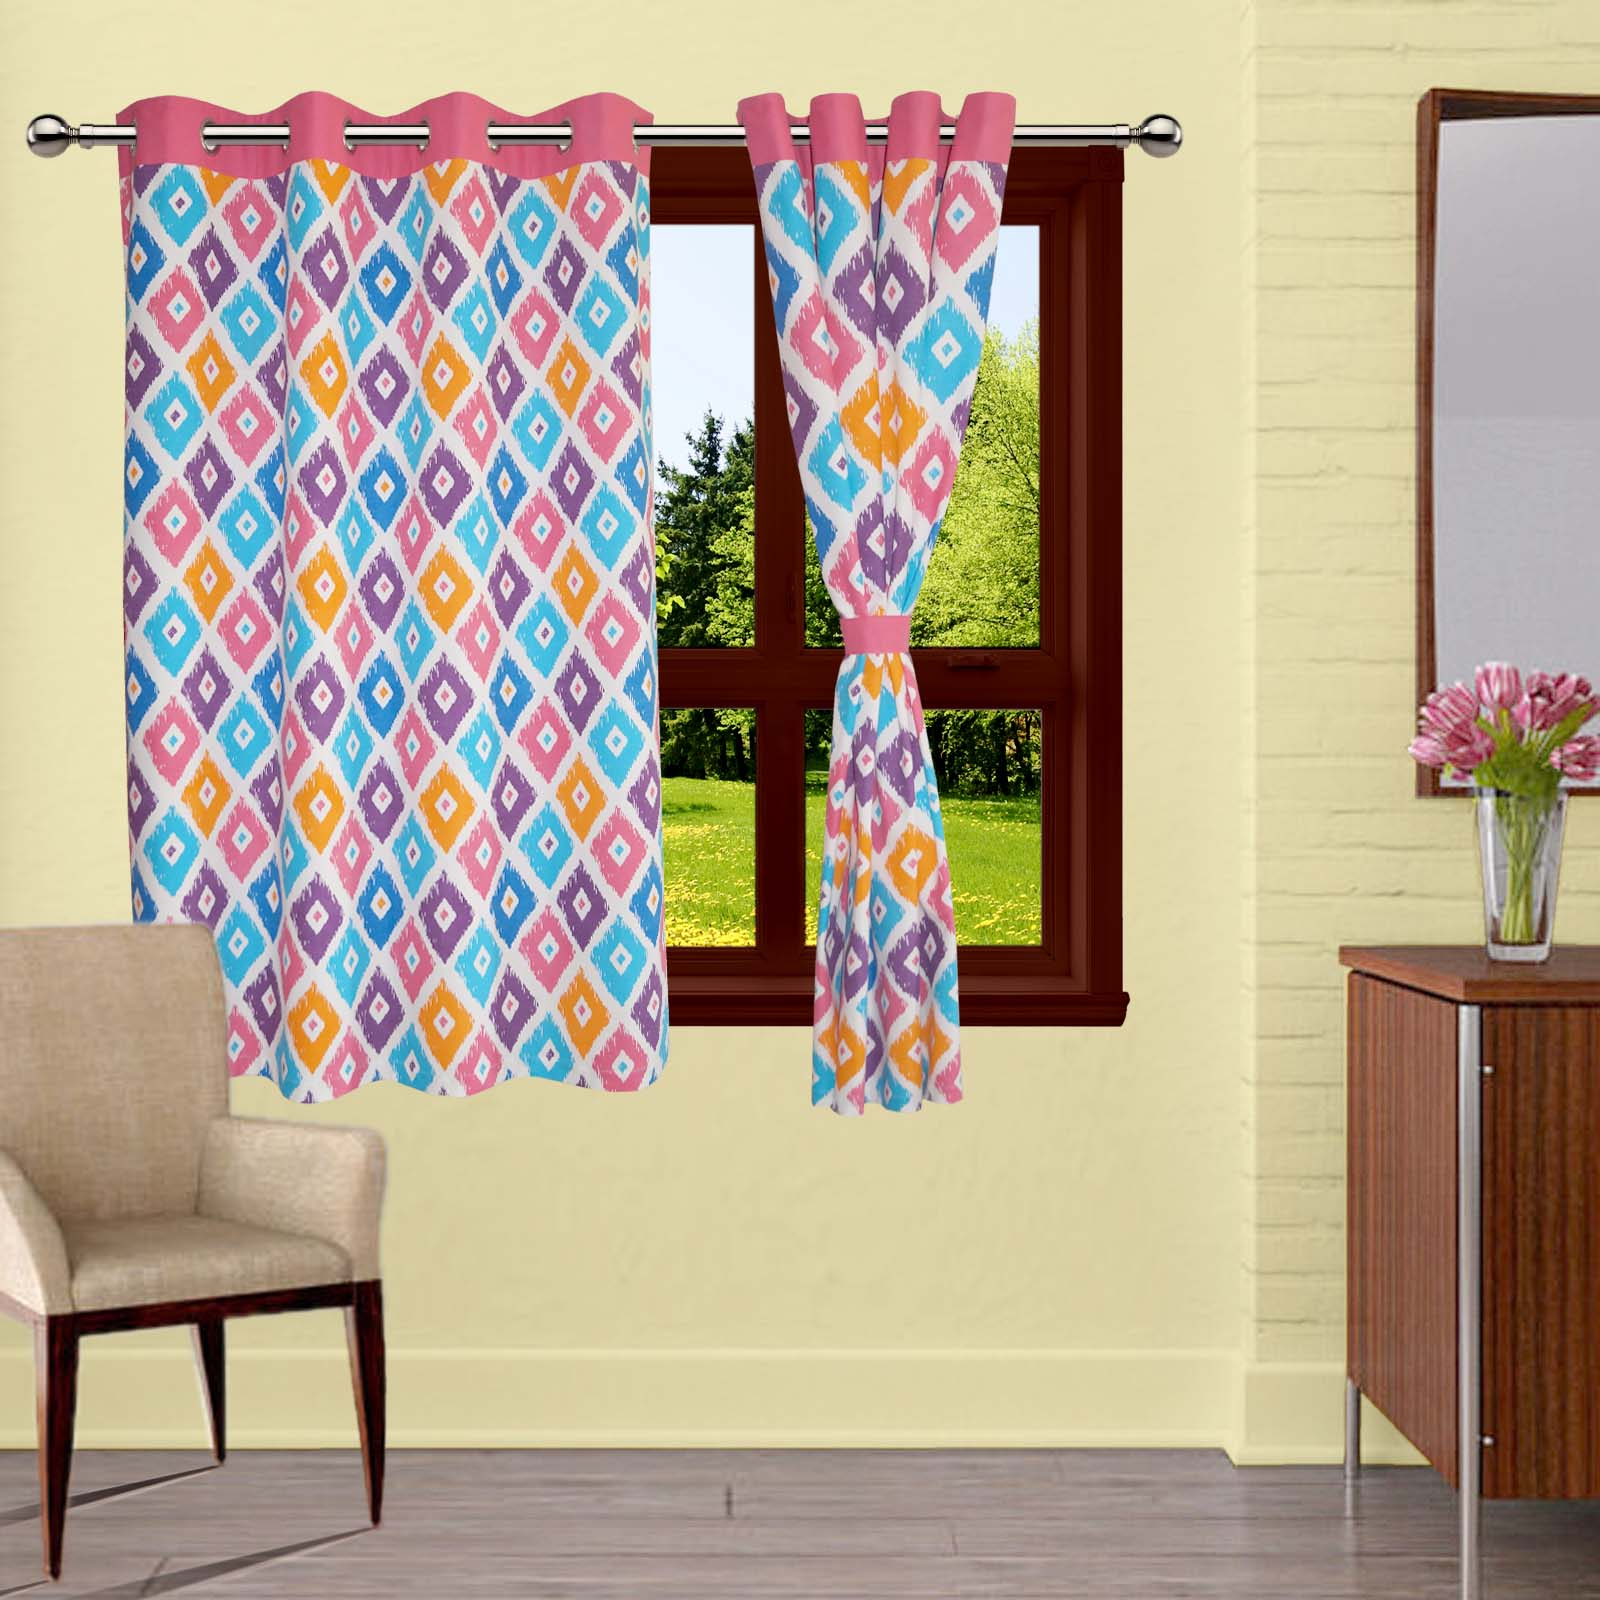 Lushomes Square Printed Cotton Curtains with 8 Eyelets & Plain Tiebacks for Windows (Single Pc)